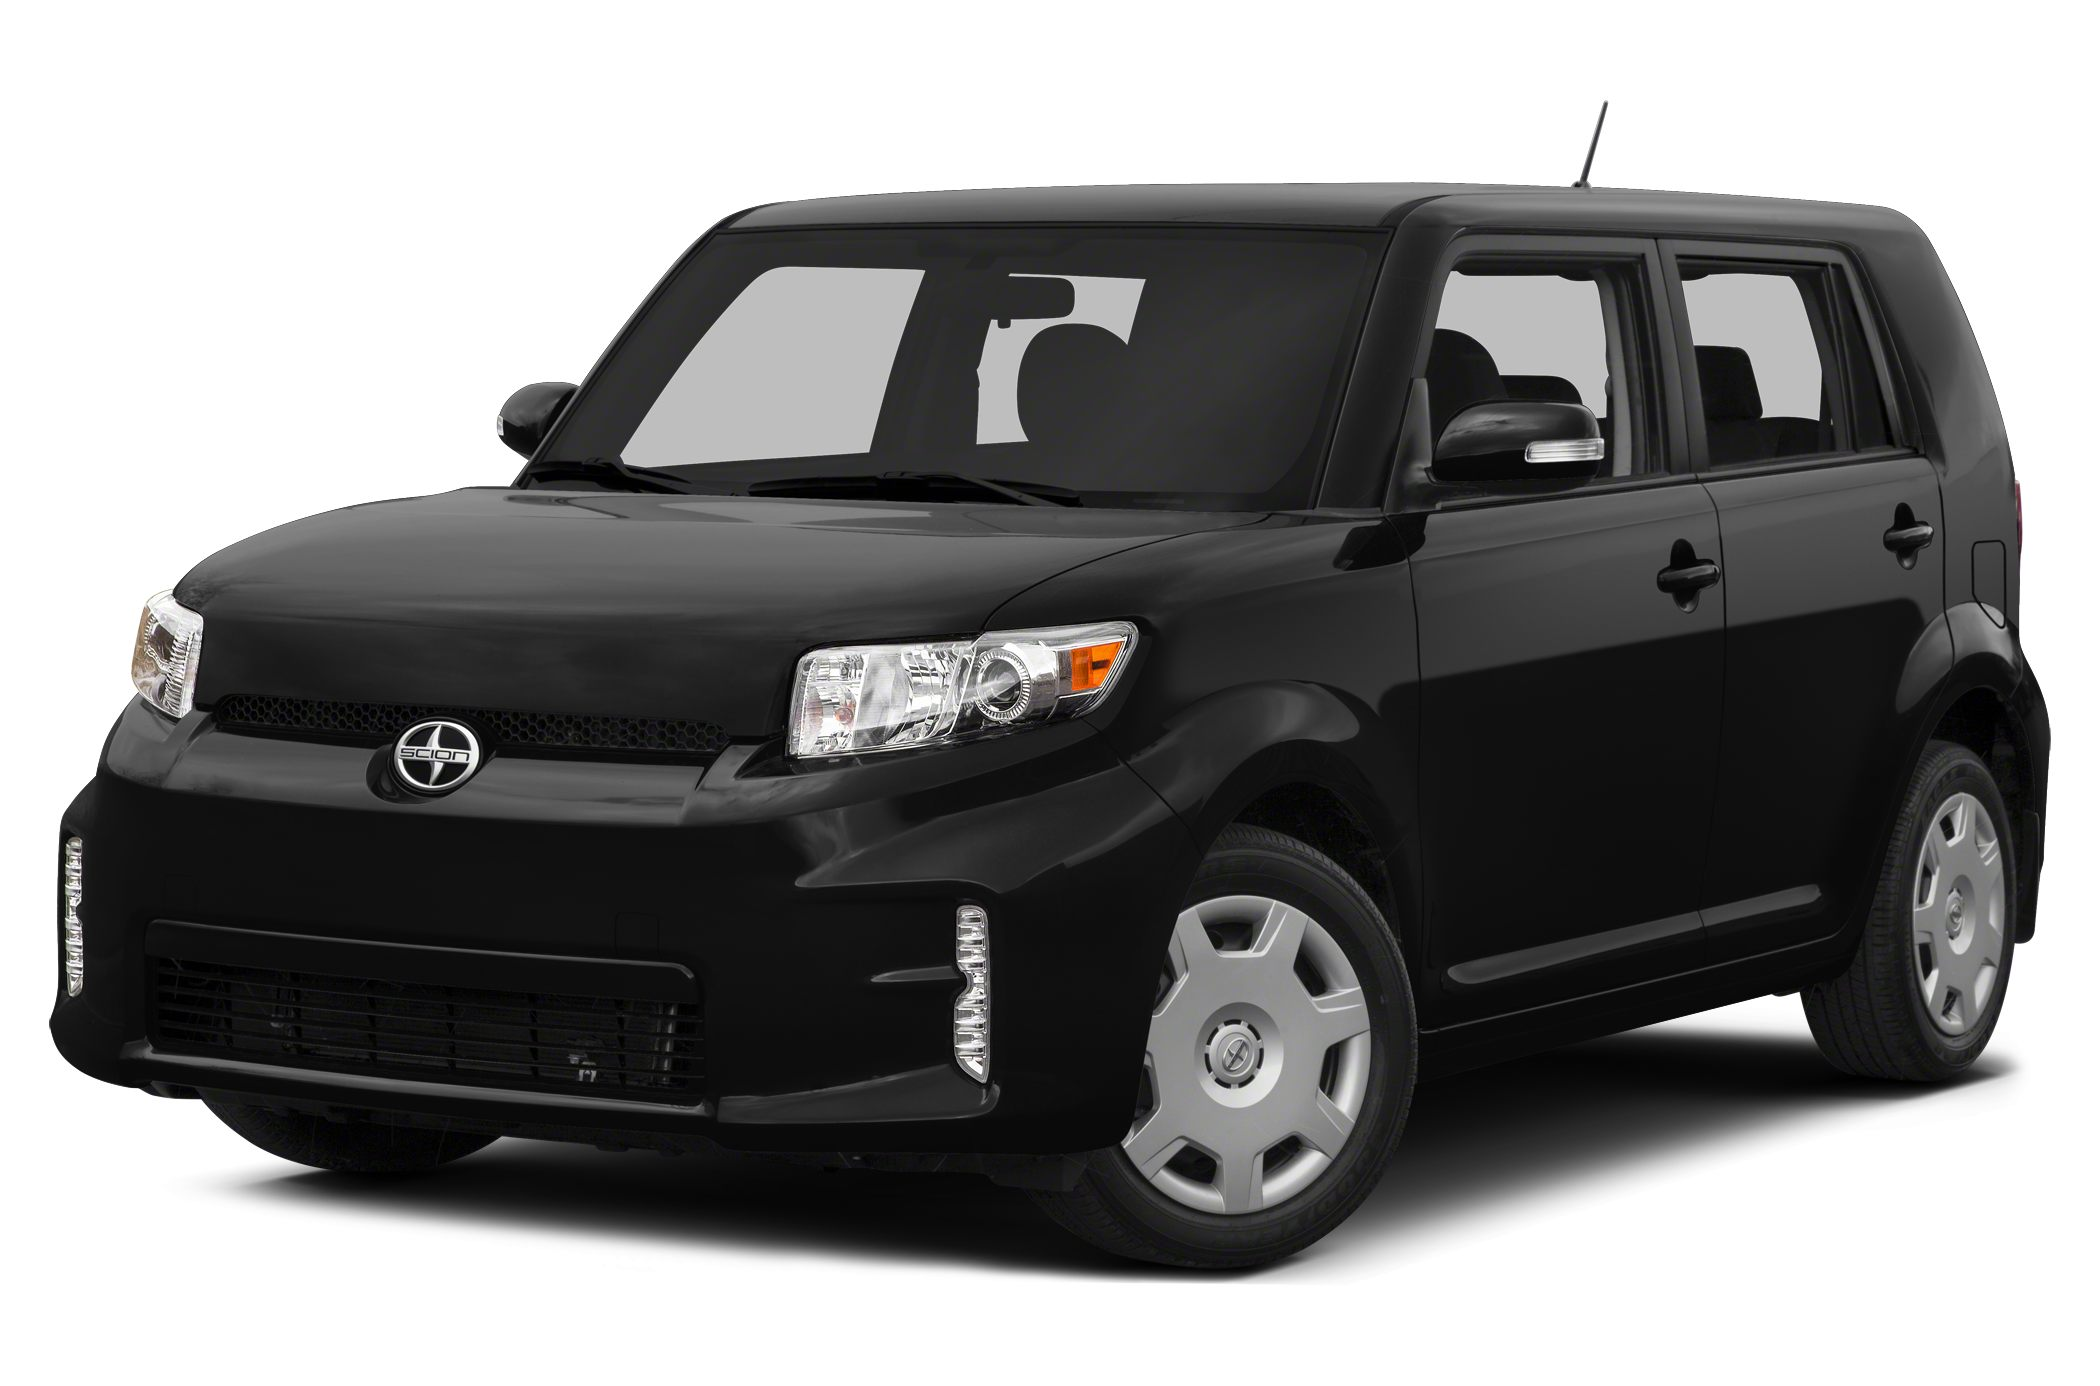 Scion xB News, Photos and Buying Information - Autoblog